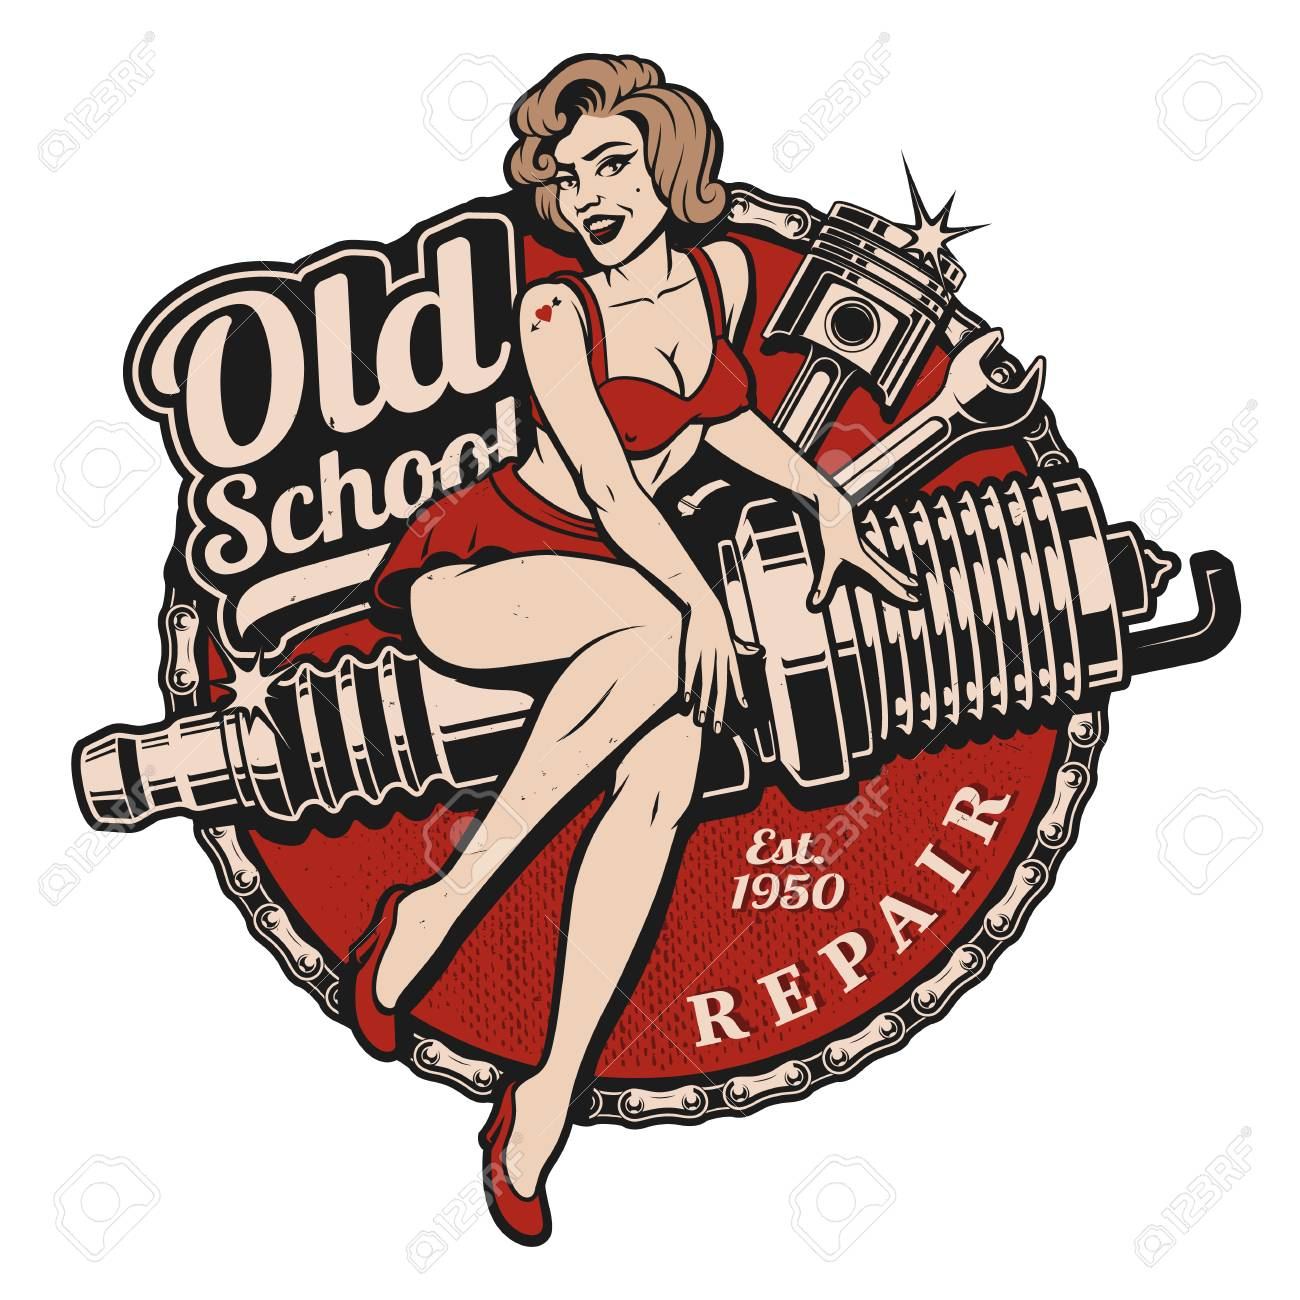 Spark Plug Pin Up Girl illustration with piston and wrench. Vintage style. All elements, text are on the separate layer. - 96908350